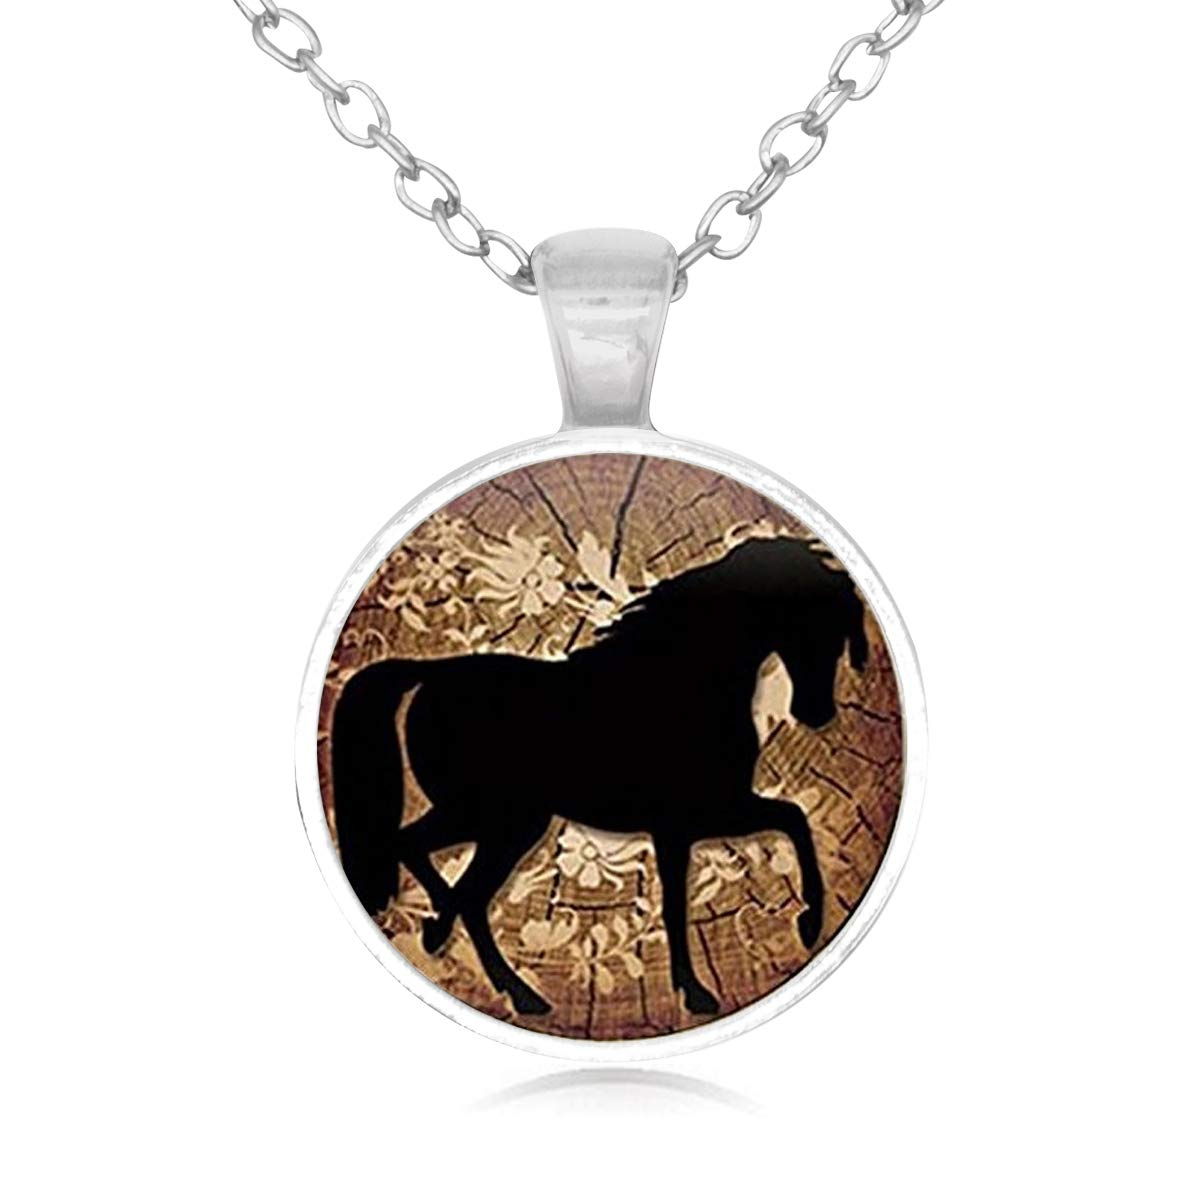 Family Decor Carousel Horse Pendant Necklace Cabochon Glass Vintage Bronze Chain Necklace Jewelry Handmade